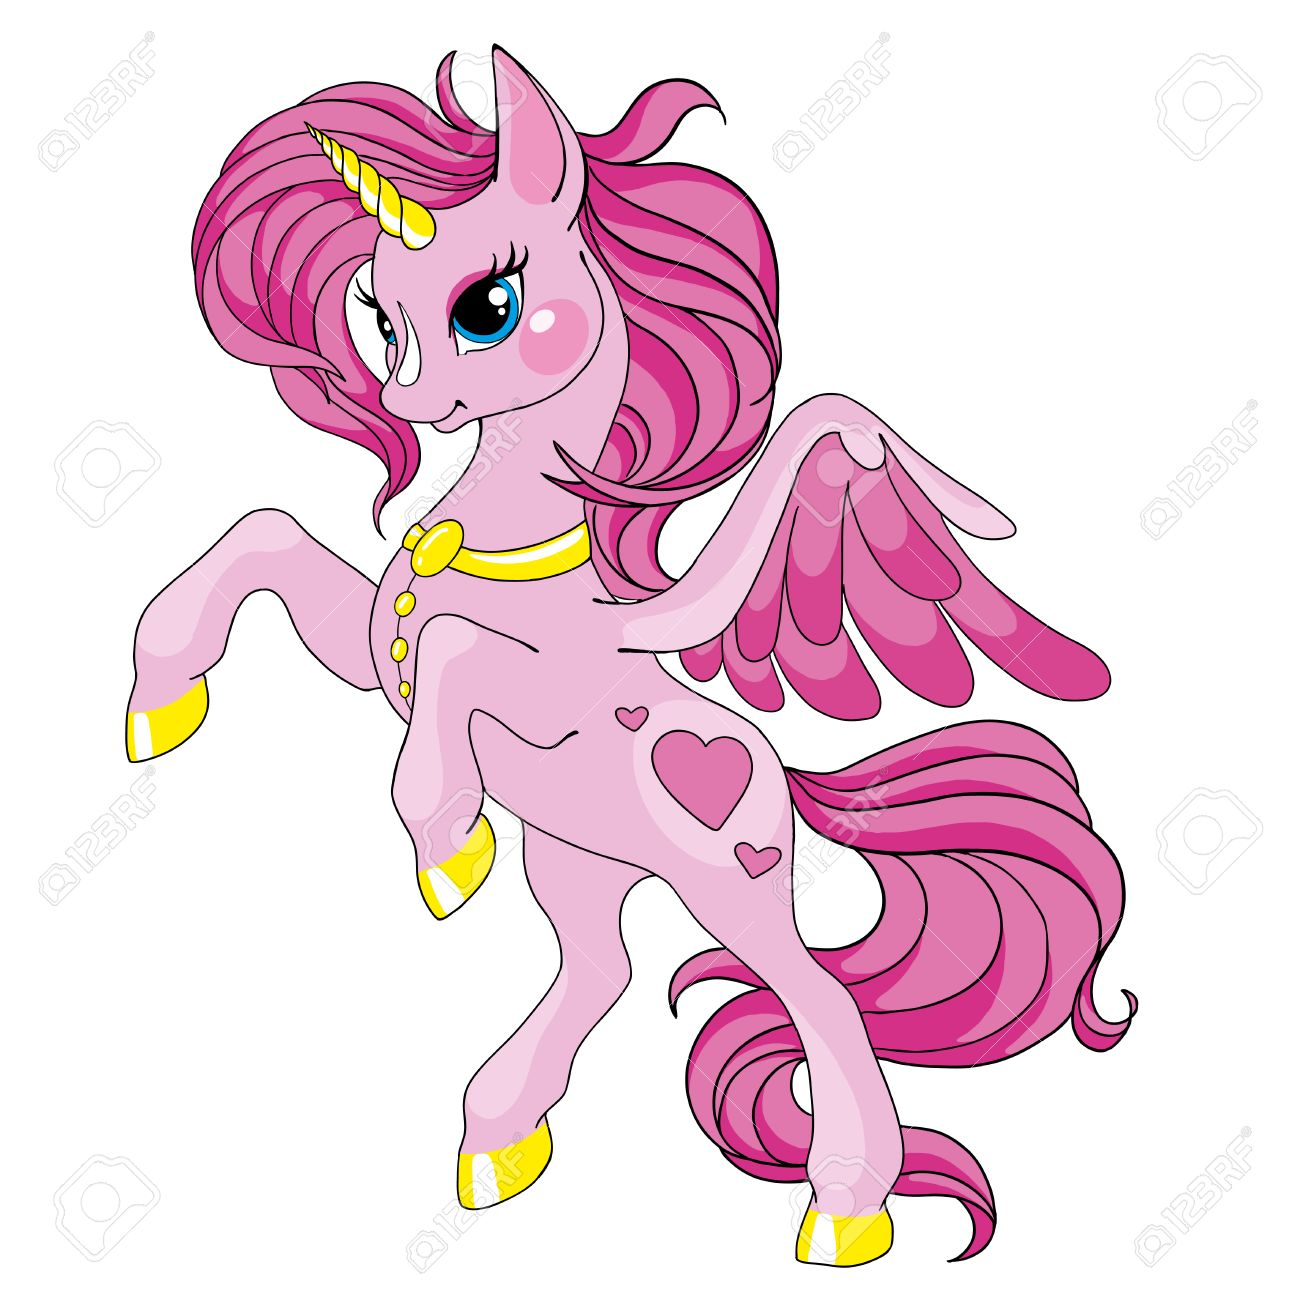 Fairy Tale Character Horse Cartoon Unicorn Pink Unicorn With Royalty Free Cliparts Vectors And Stock Illustration Image 85289960